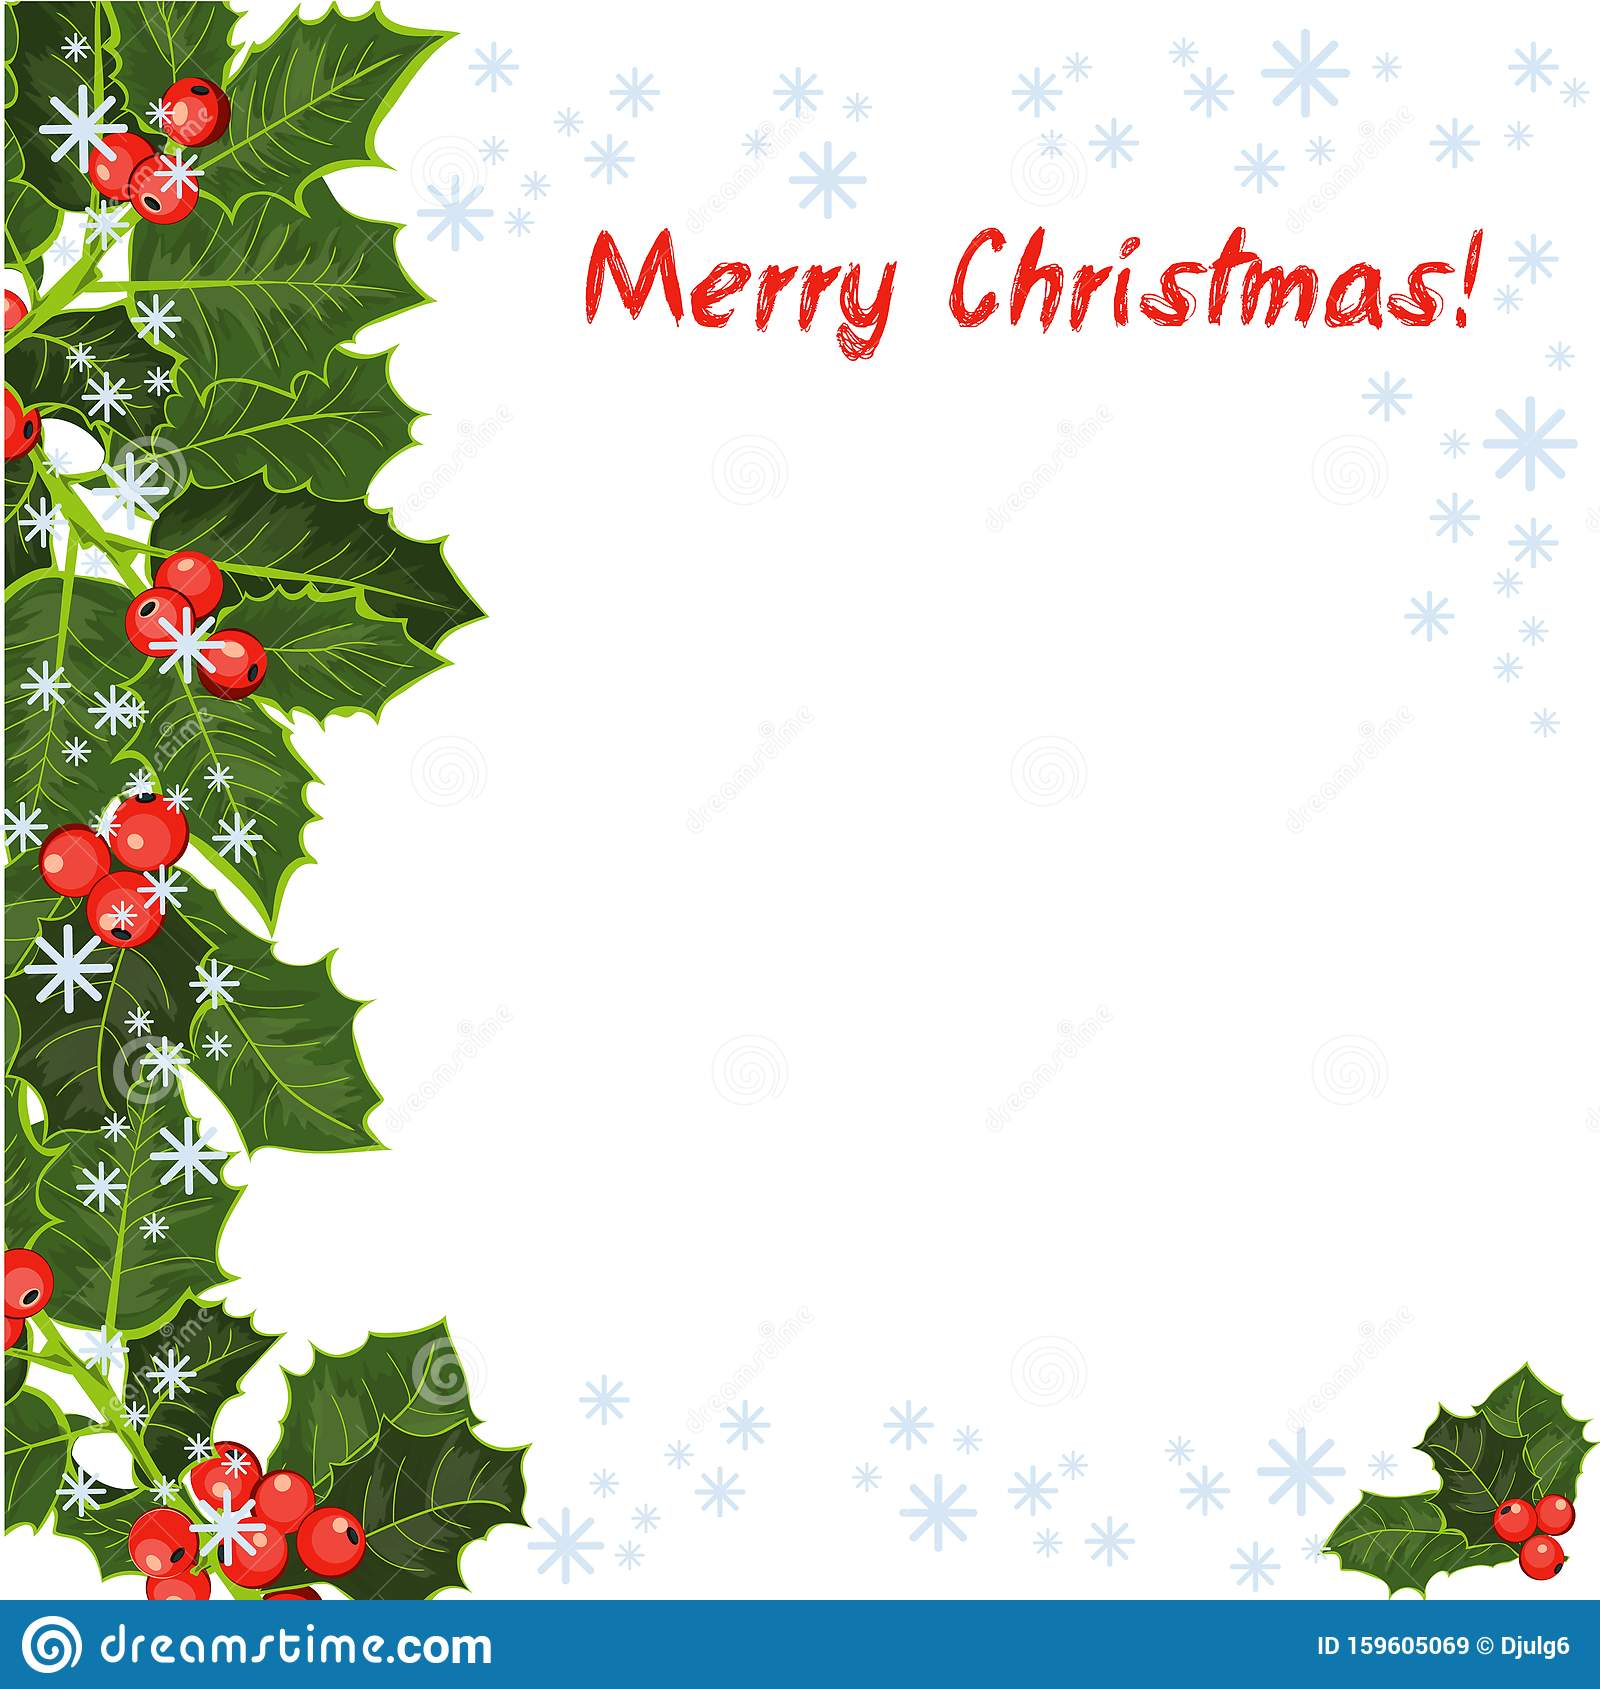 merry christmas card holly tree greeting cards template